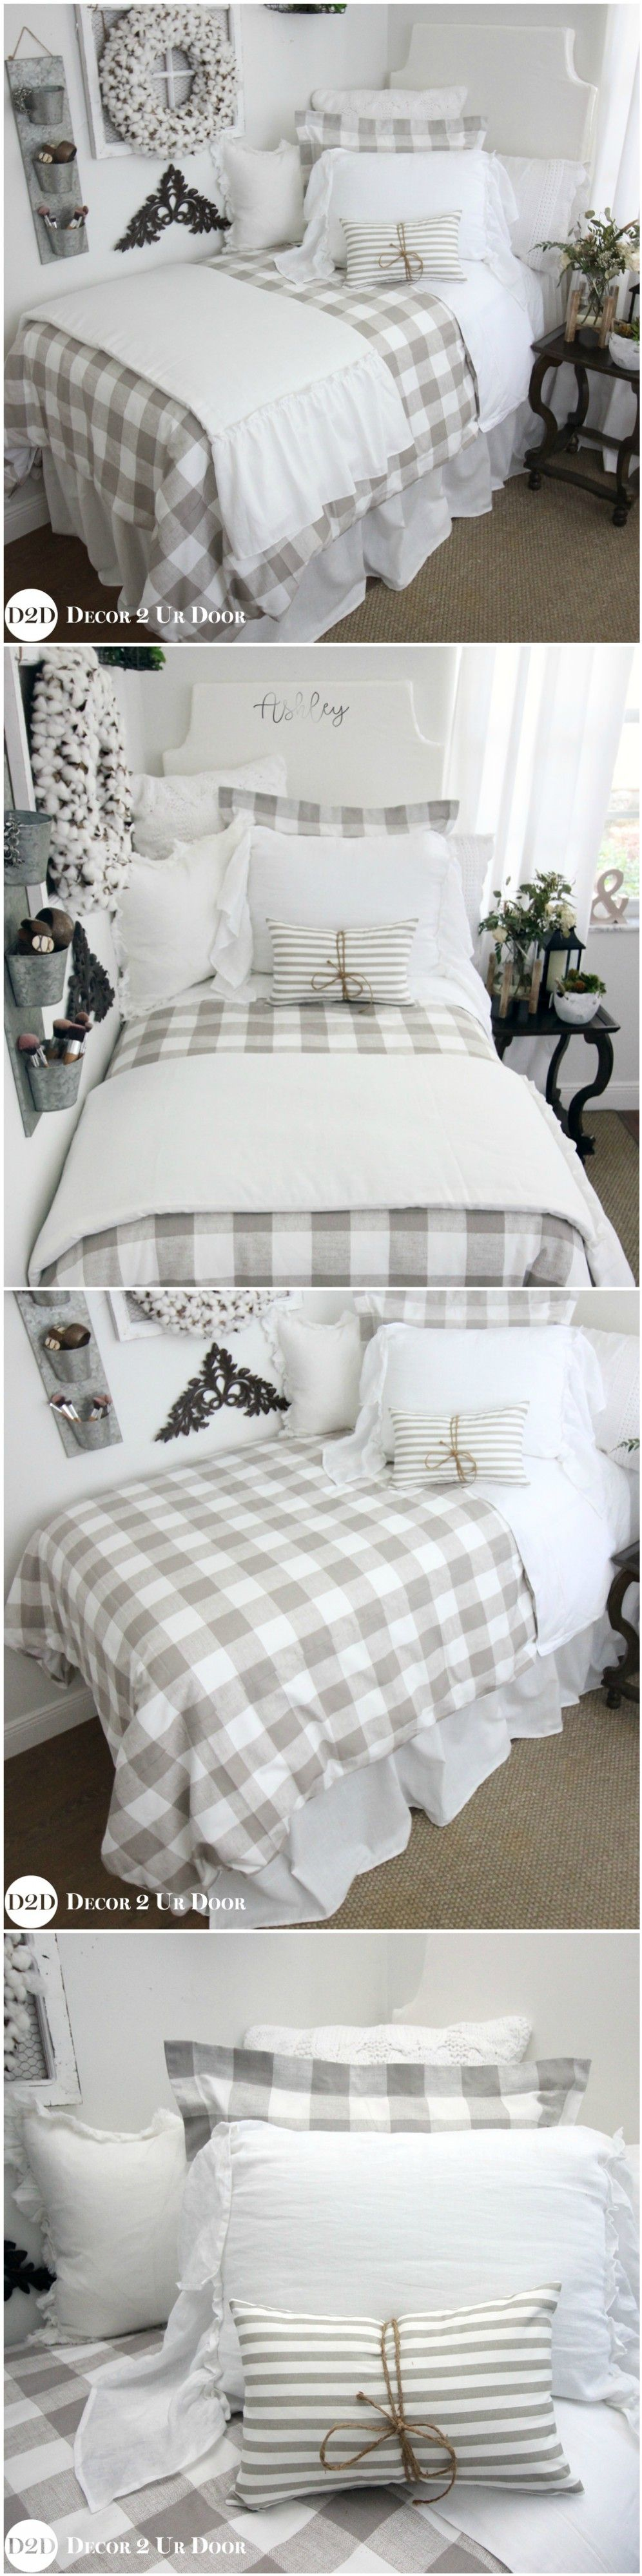 queen co plaid buffalo rustic comforter check bedding sheets asli aetherair montana morning